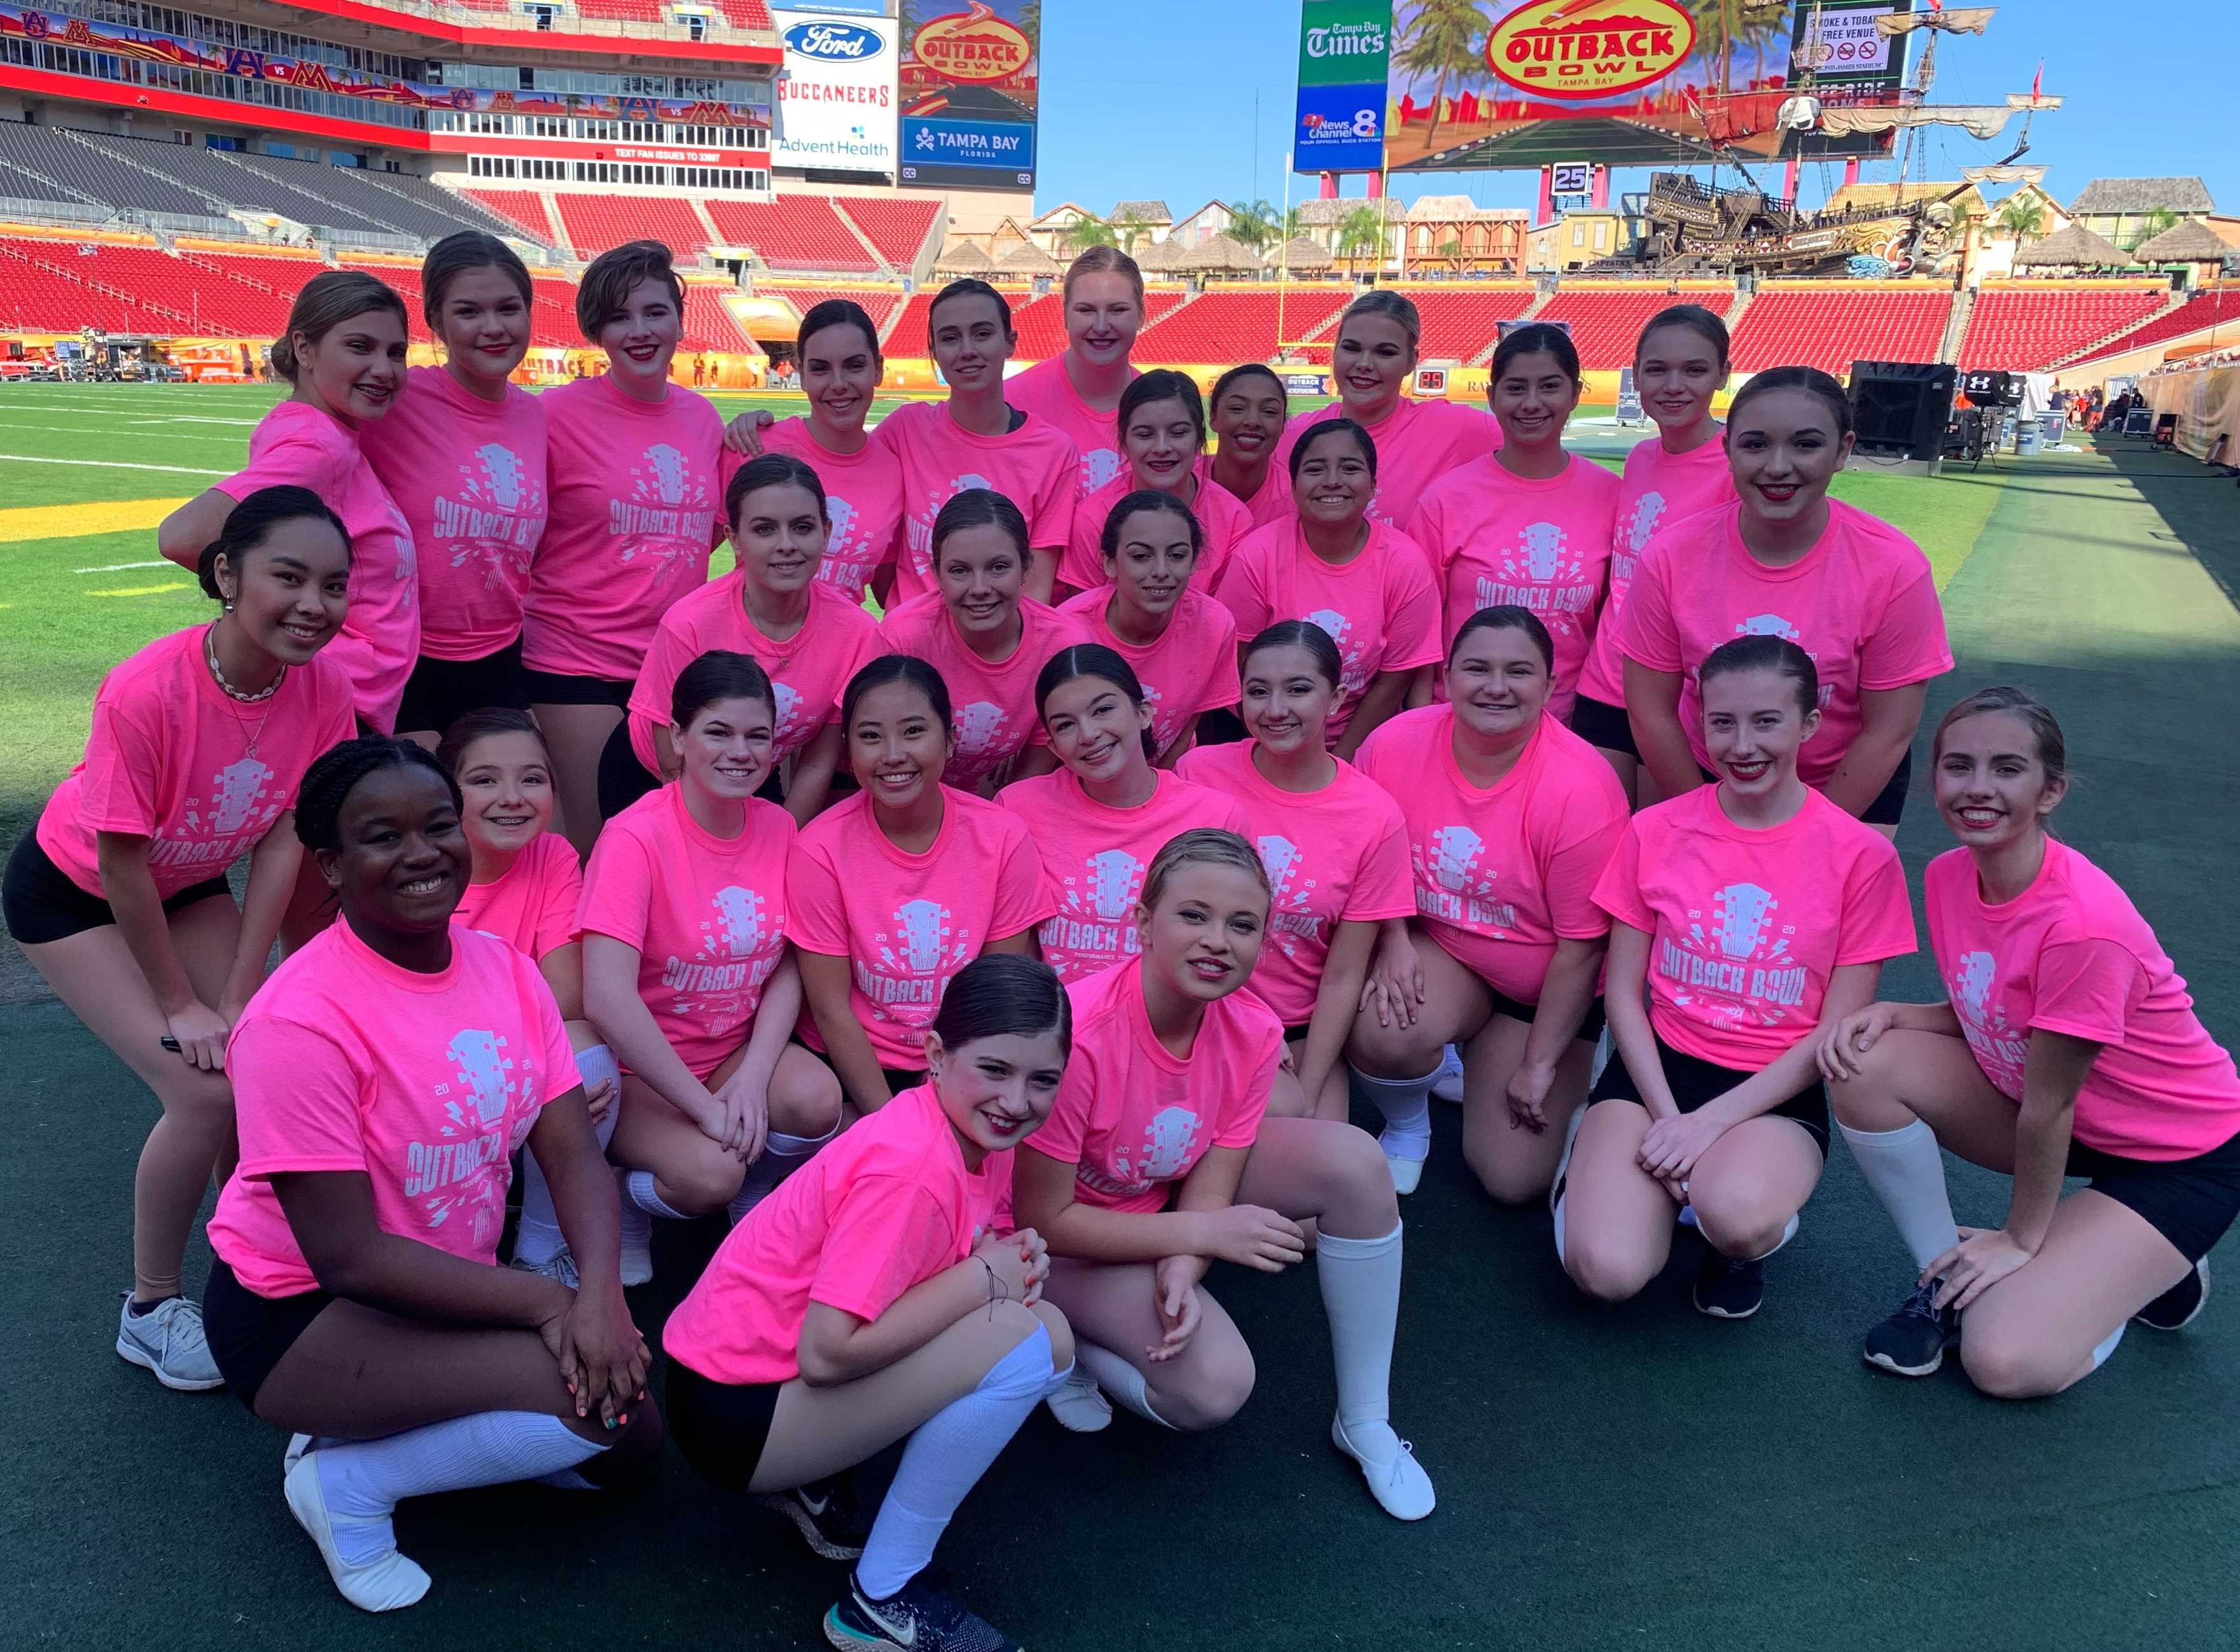 Oregon dancers get ready for their performance at the 2020 Outback Bowl.